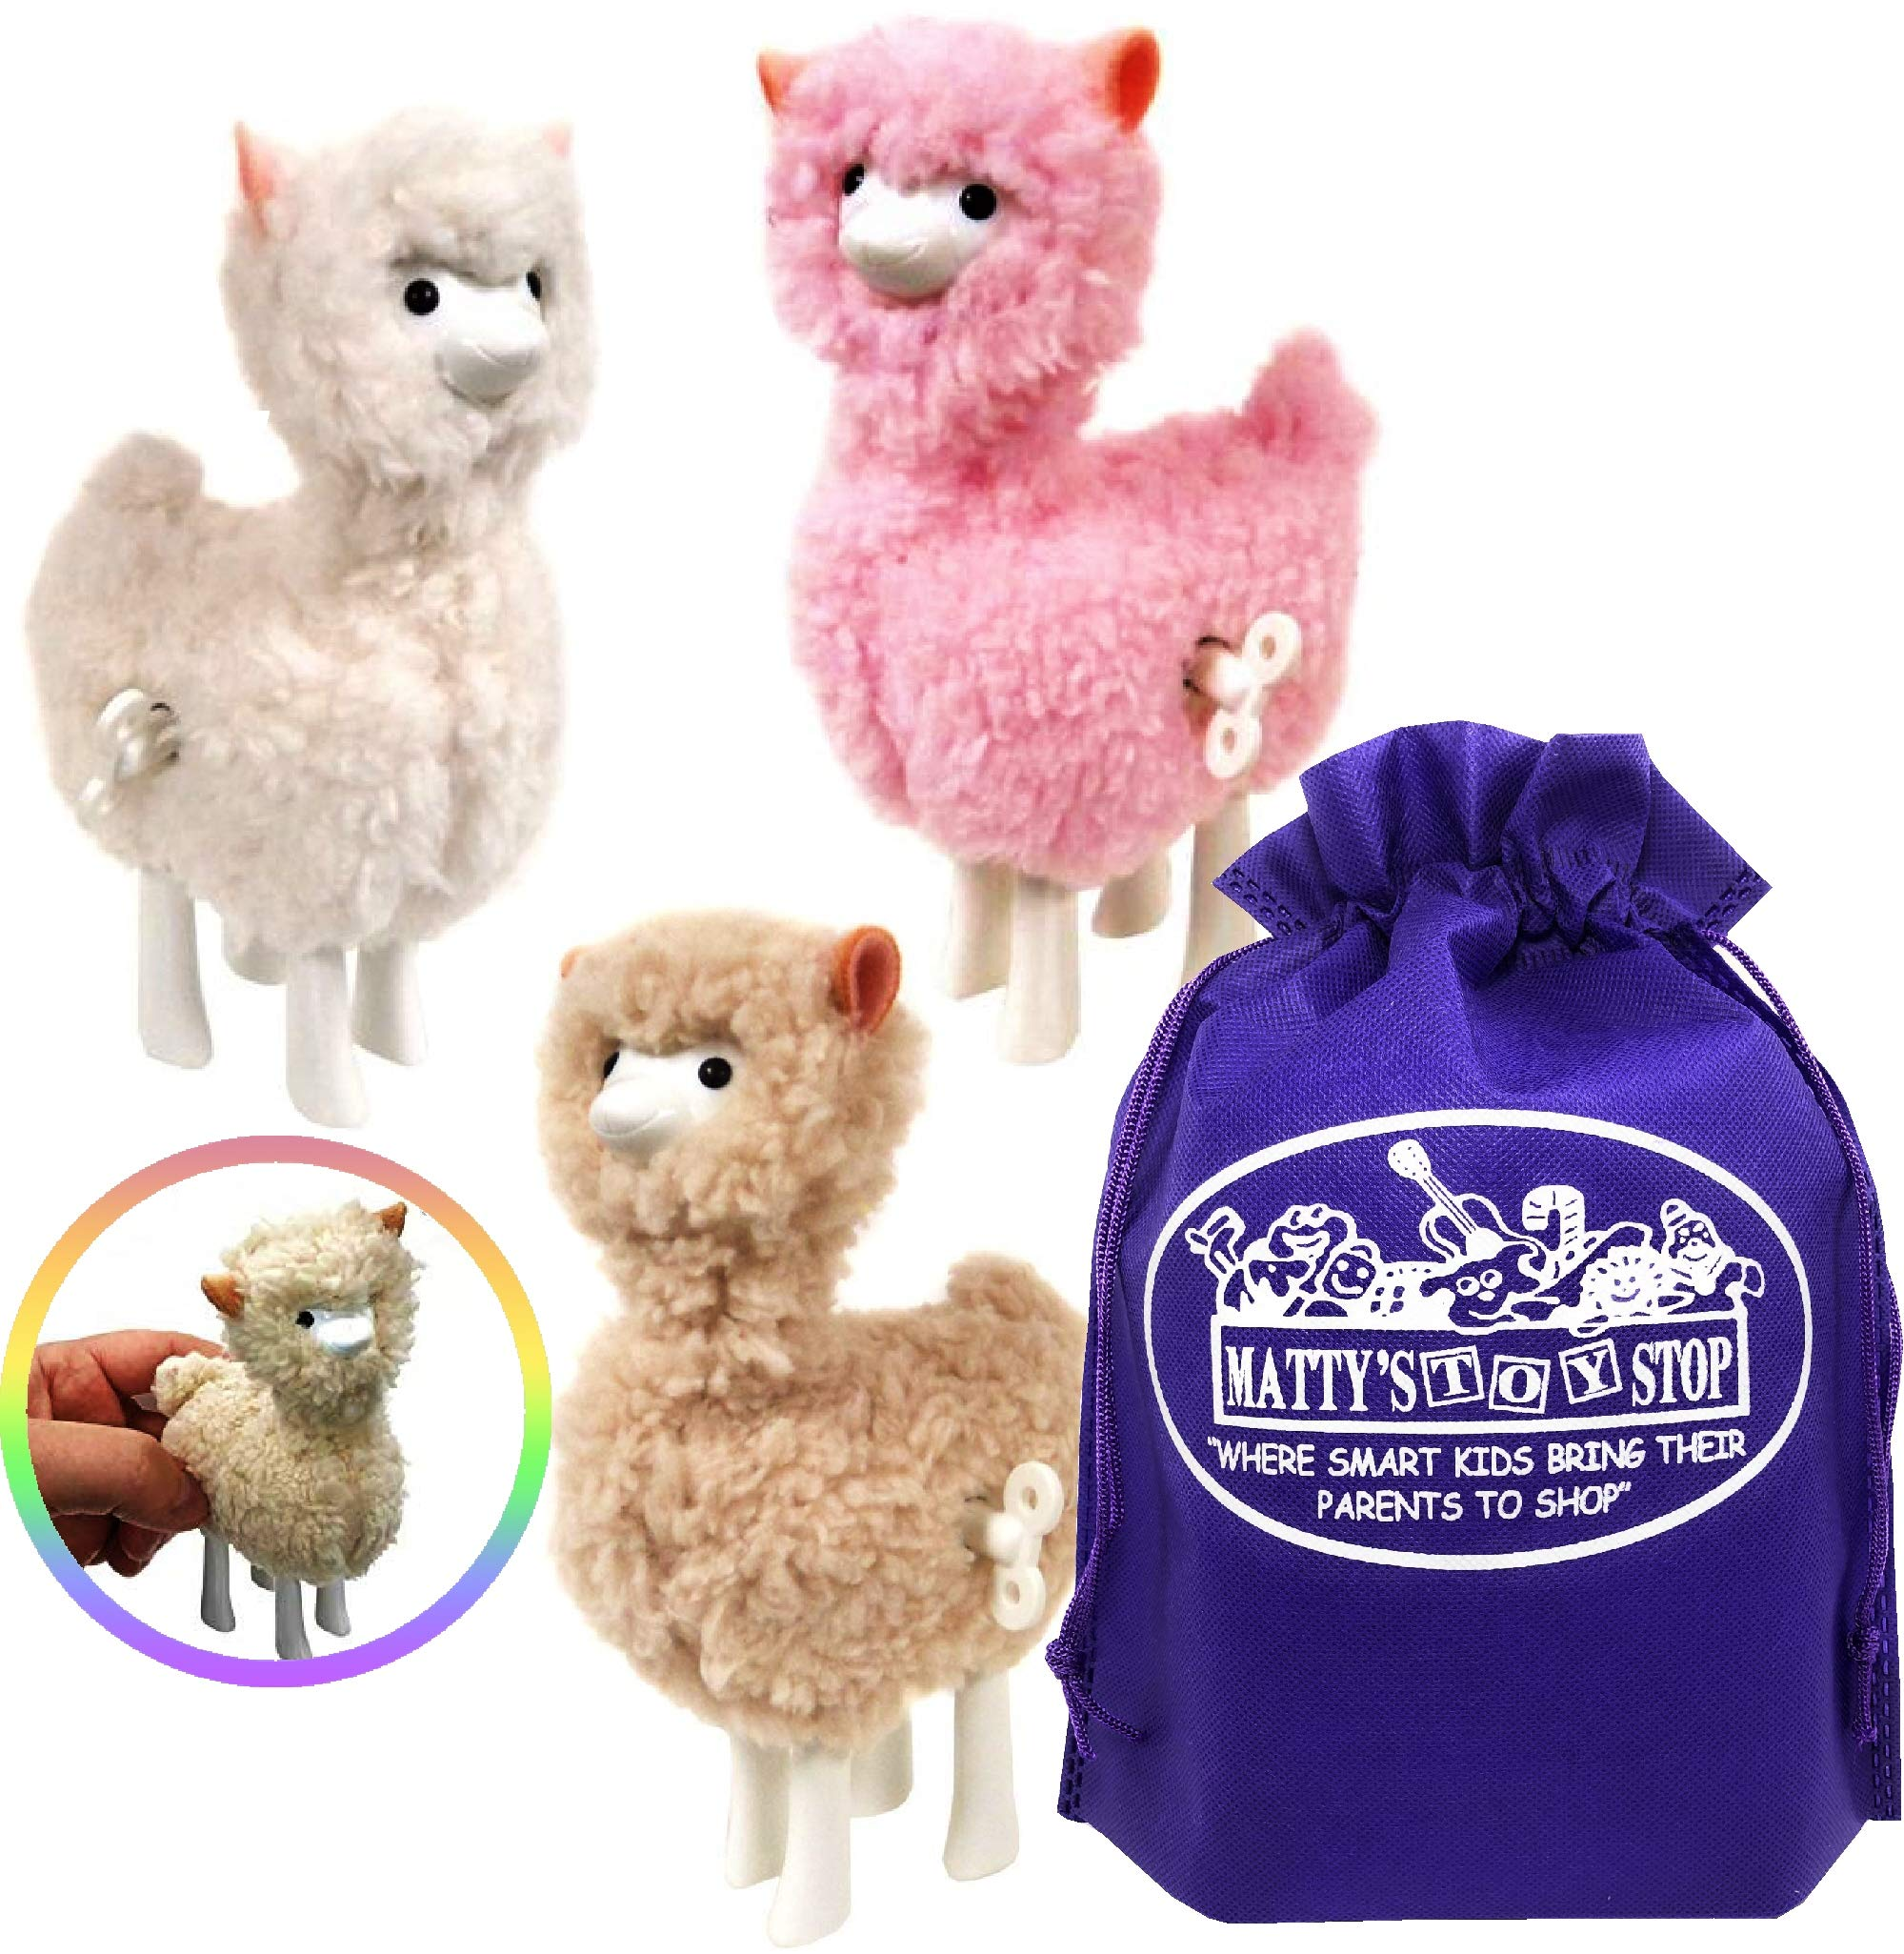 Schylling Llama Wind-Up Walkers White, Pink & Beige Gift Set Bundle with Matty's Toy Stop Storage Bag - 3 Pack by Schylling